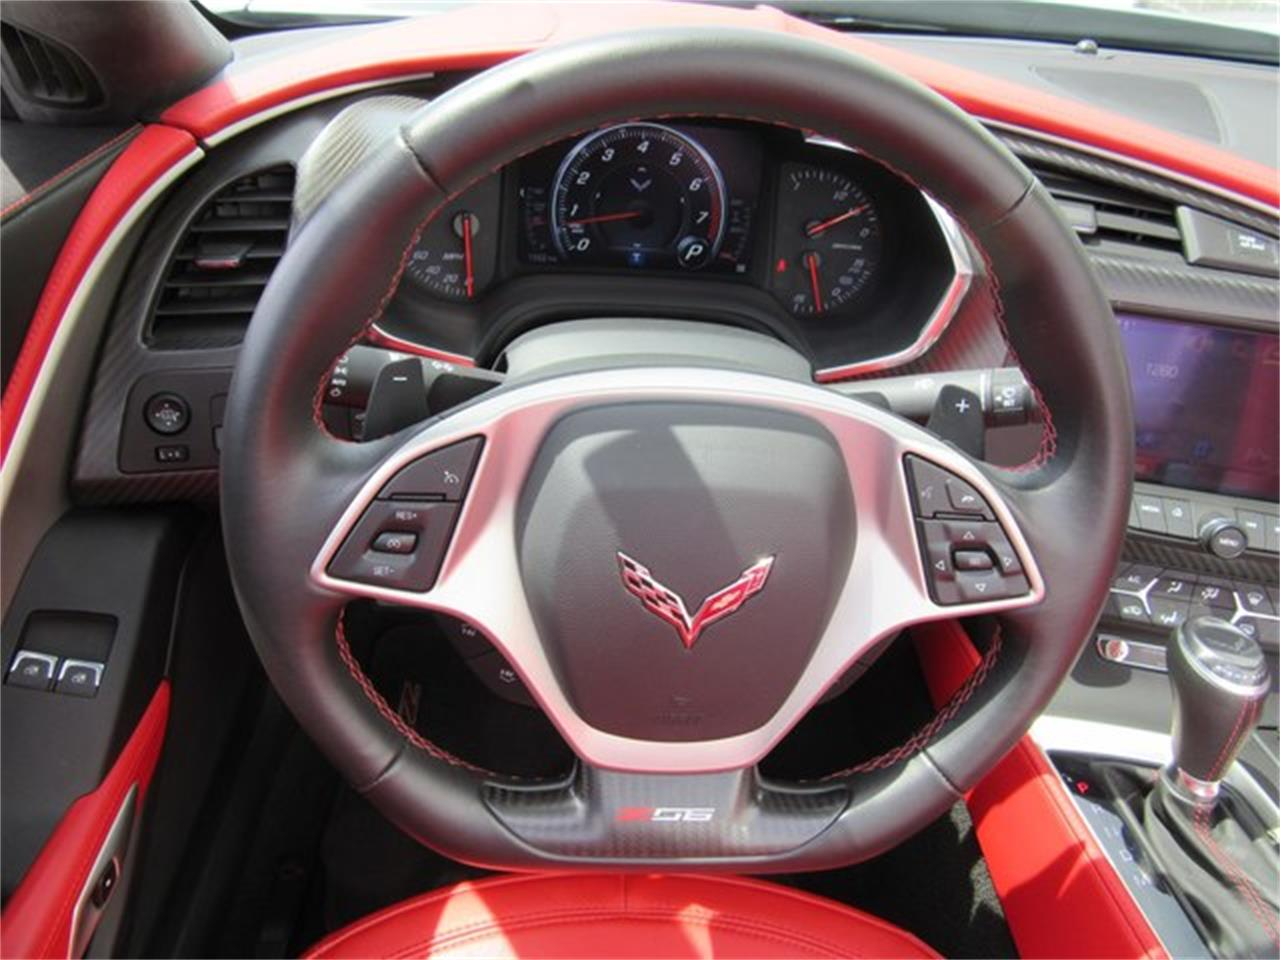 Large Picture of '15 Chevrolet Corvette - $75,000.00 - PW9R